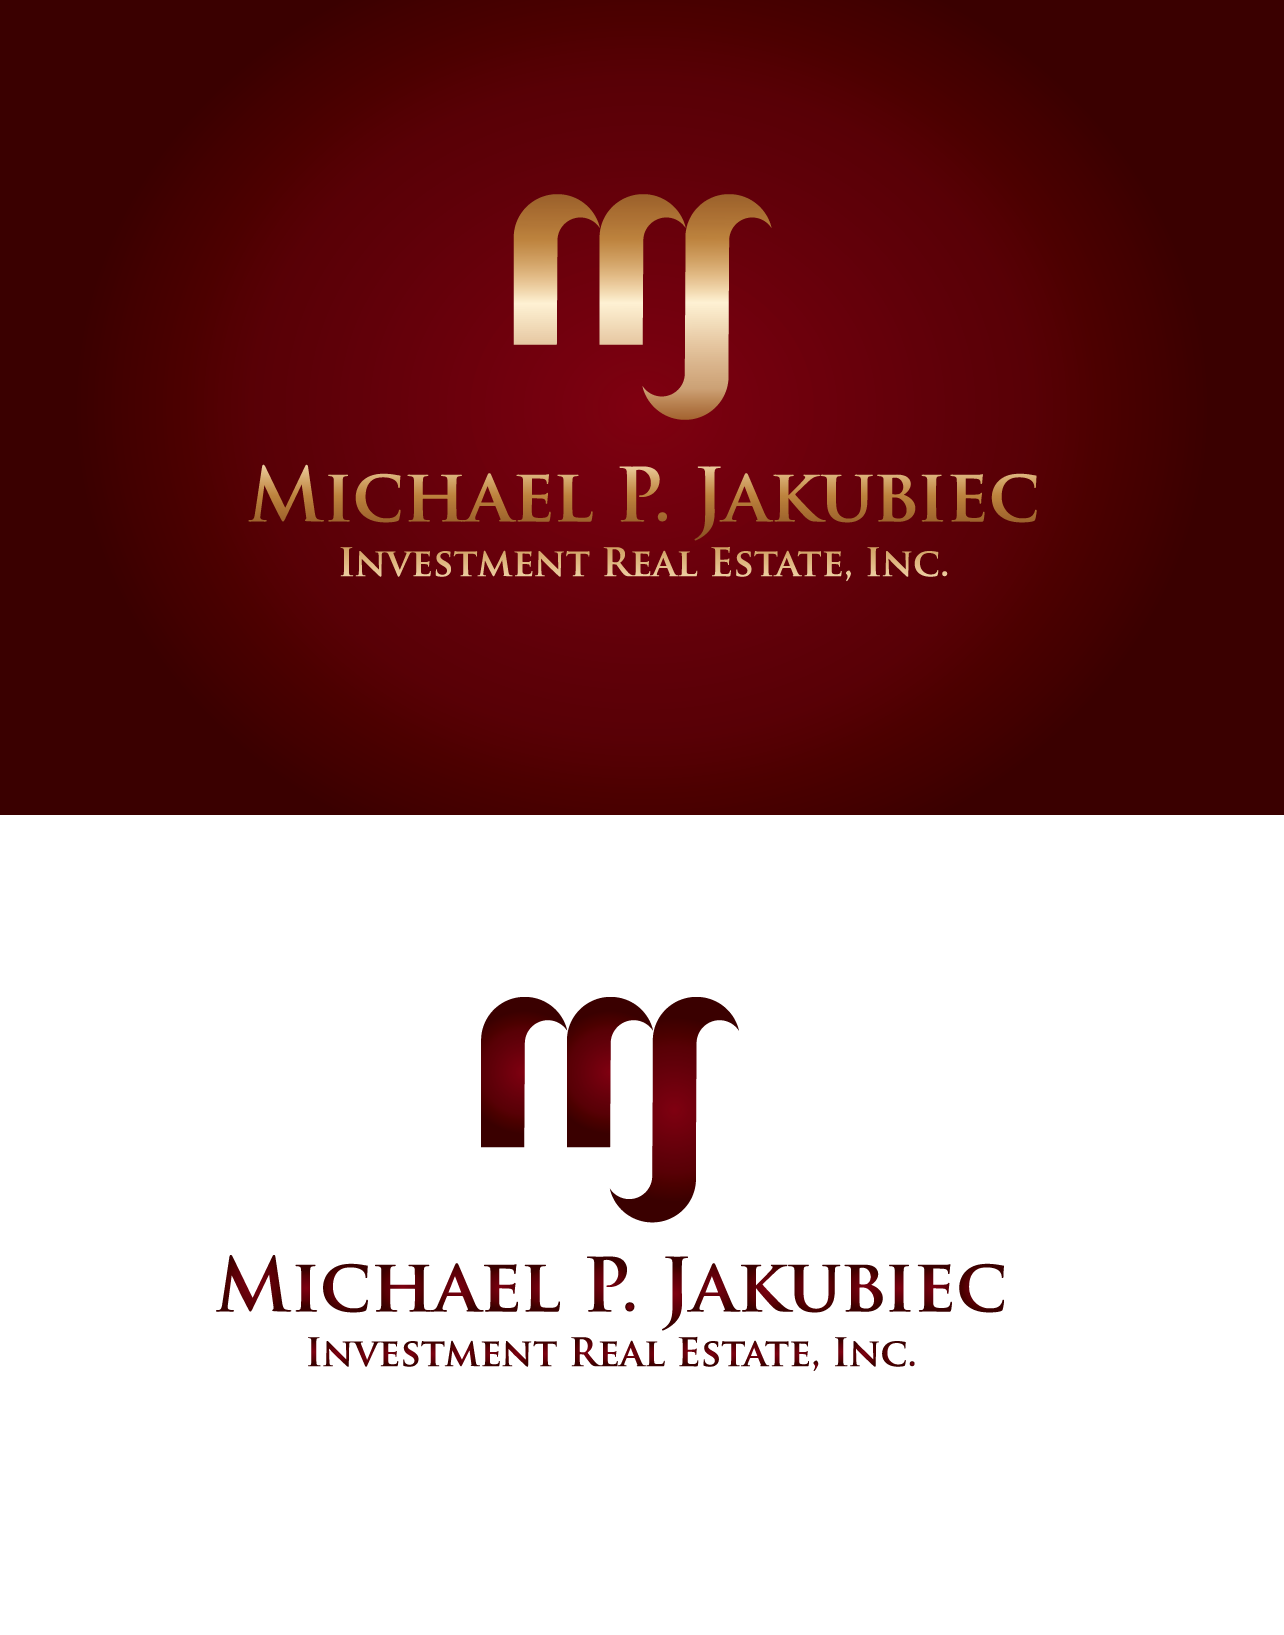 Logo Design by luna - Entry No. 105 in the Logo Design Contest New Logo Design for Michael P. Jakubiec Investment Real Estate, Inc..